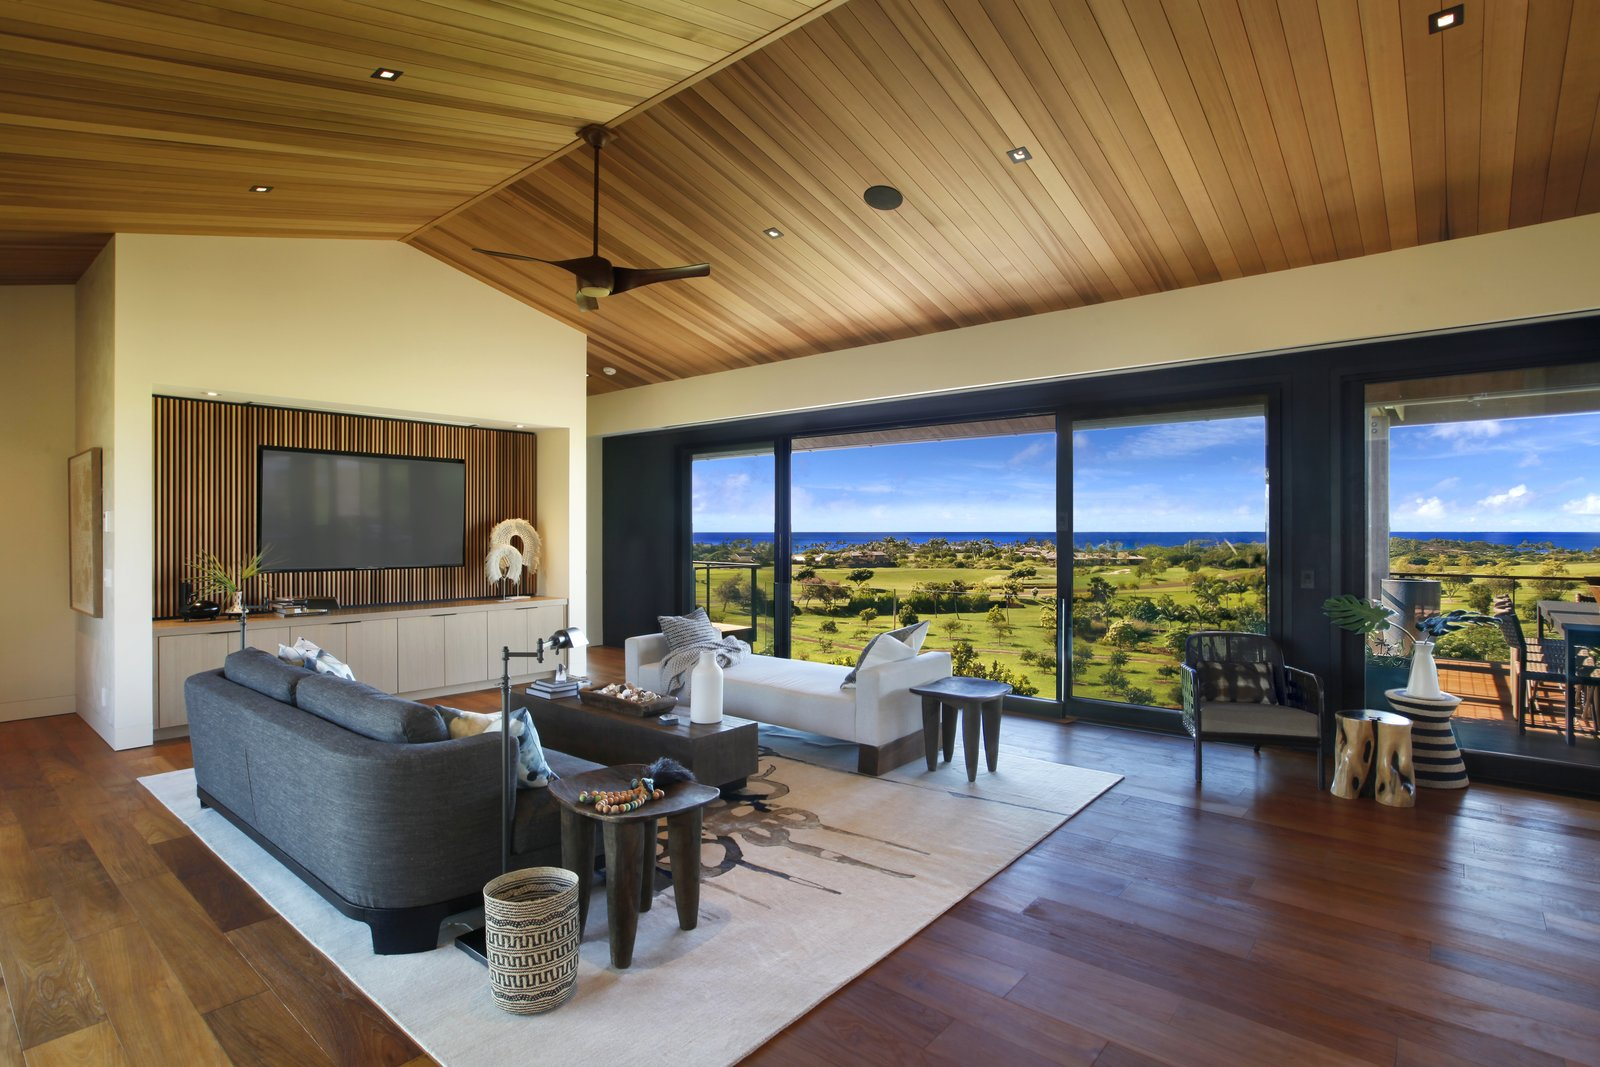 Living Room, Dark Hardwood Floor, End Tables, Coffee Tables, Chair, Sofa, and Ceiling Lighting High ceilings with ceiling fans make for breezy interior.  Photo 3 of 14 in A Breezy Hawaiian Residence by Olson Kundig Hits the Market at $6.95M